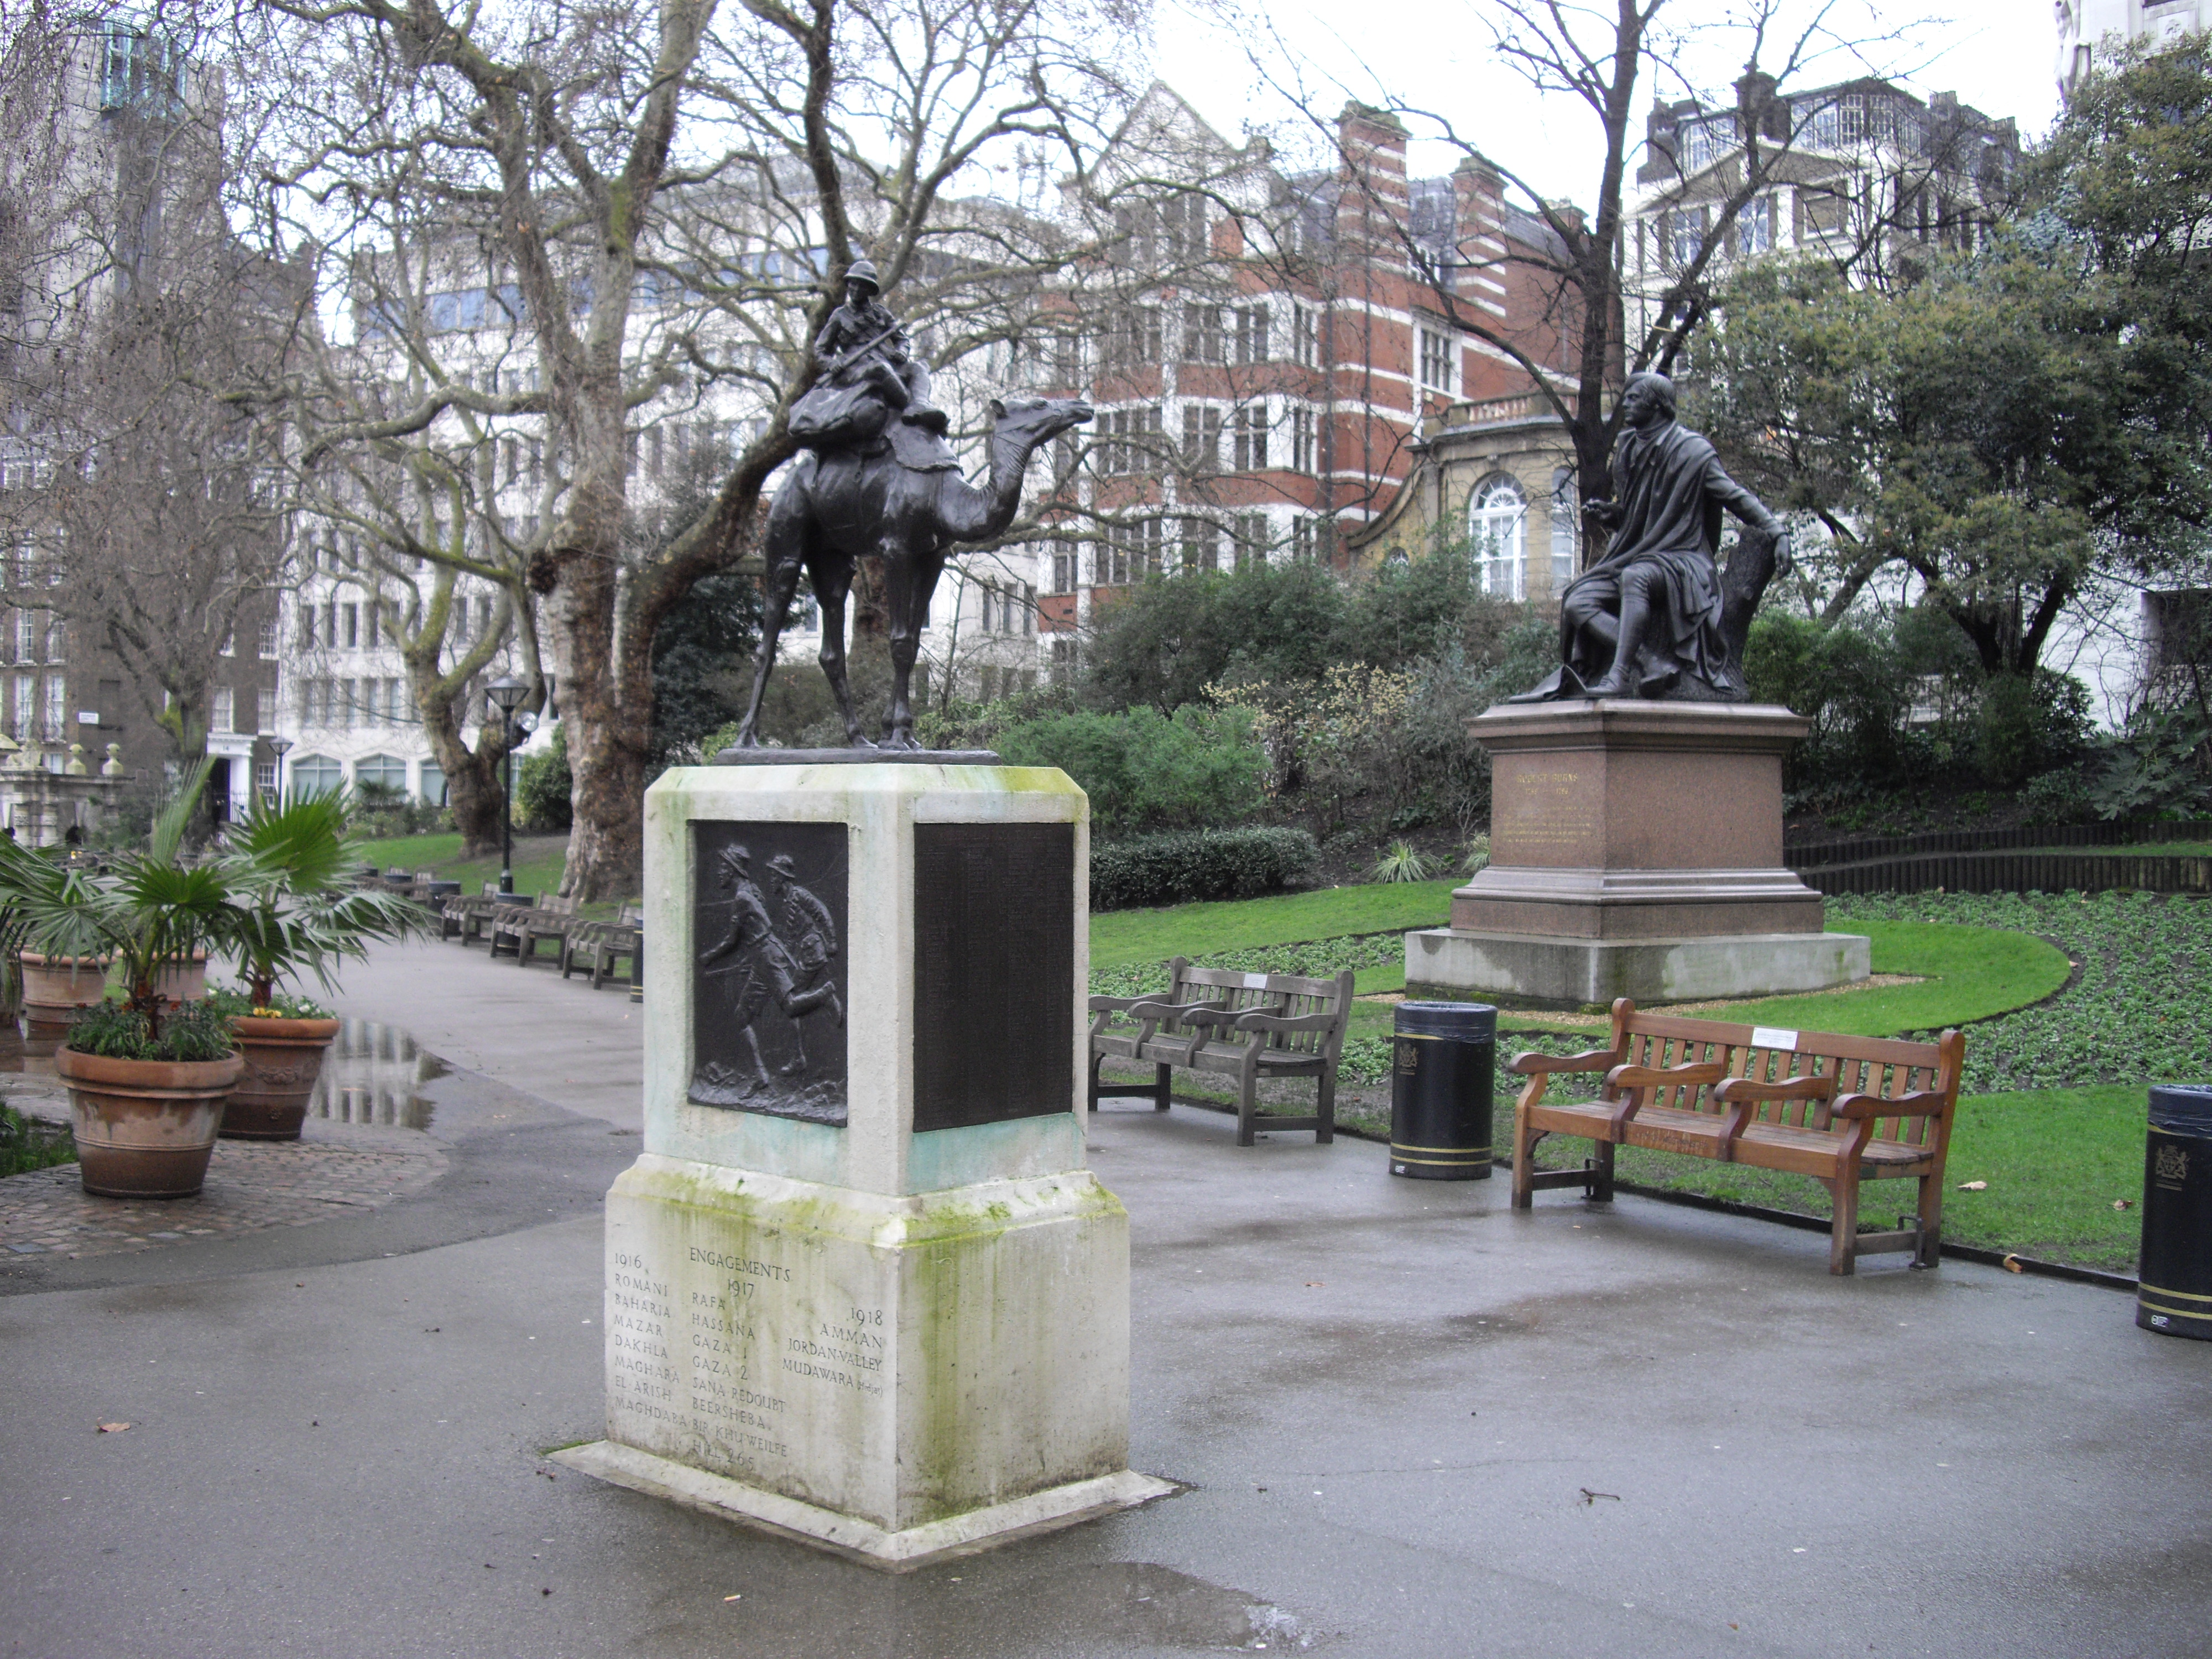 File Statues In Victoria Embankment Gardens Geograph Org Uk